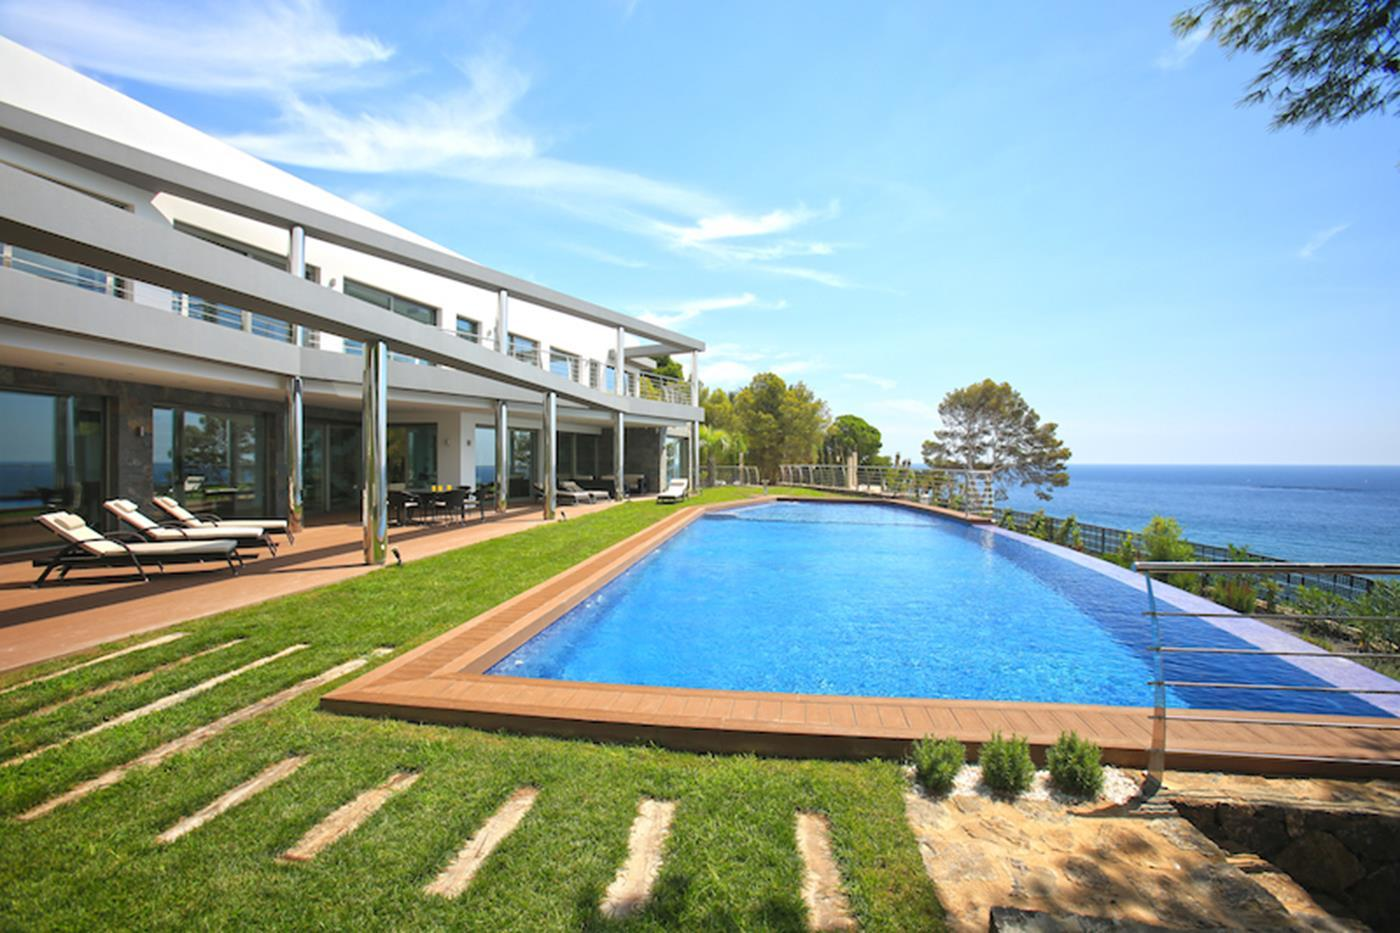 luxury-villa en altea · la-galera 5900000€